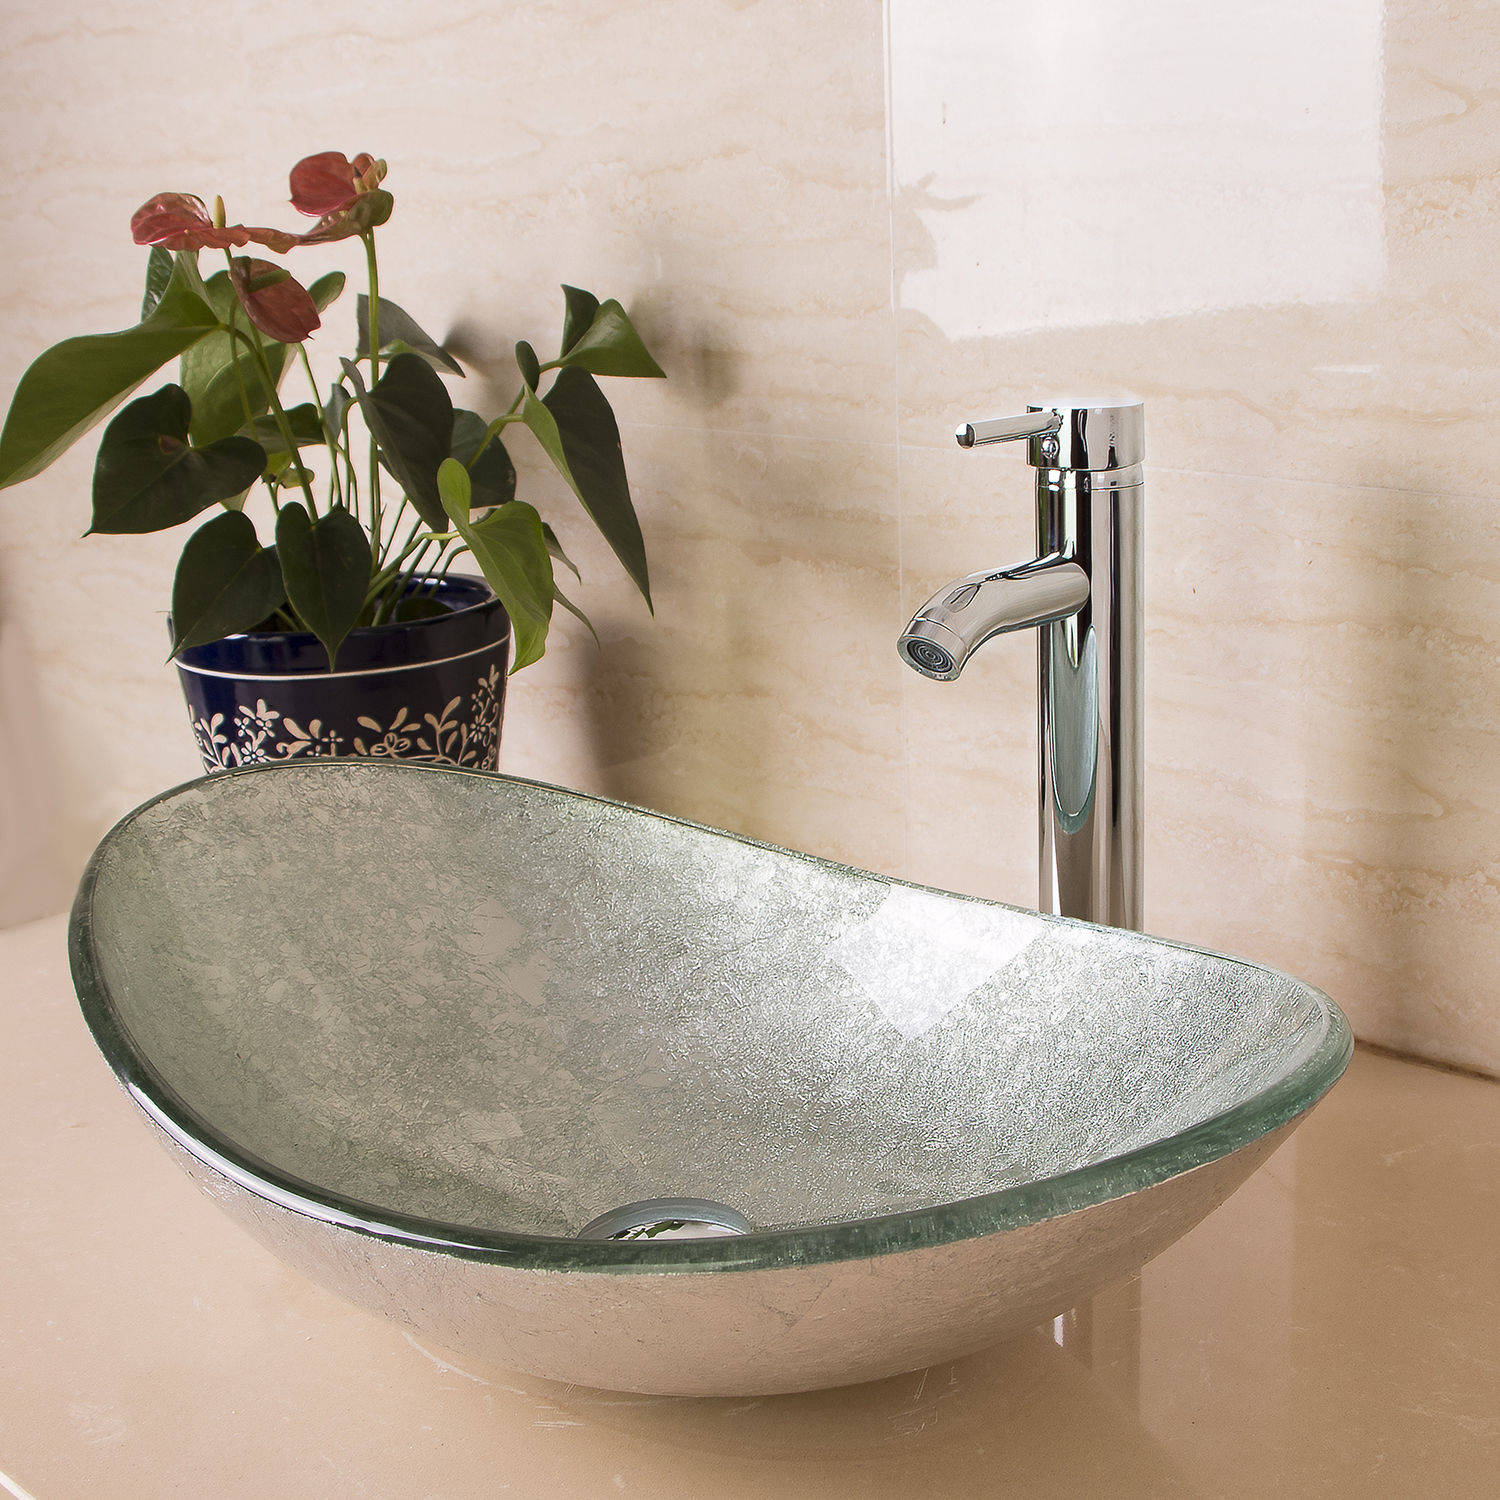 Aegina Oval Bathroom Glass Sink with Faucet & Drain